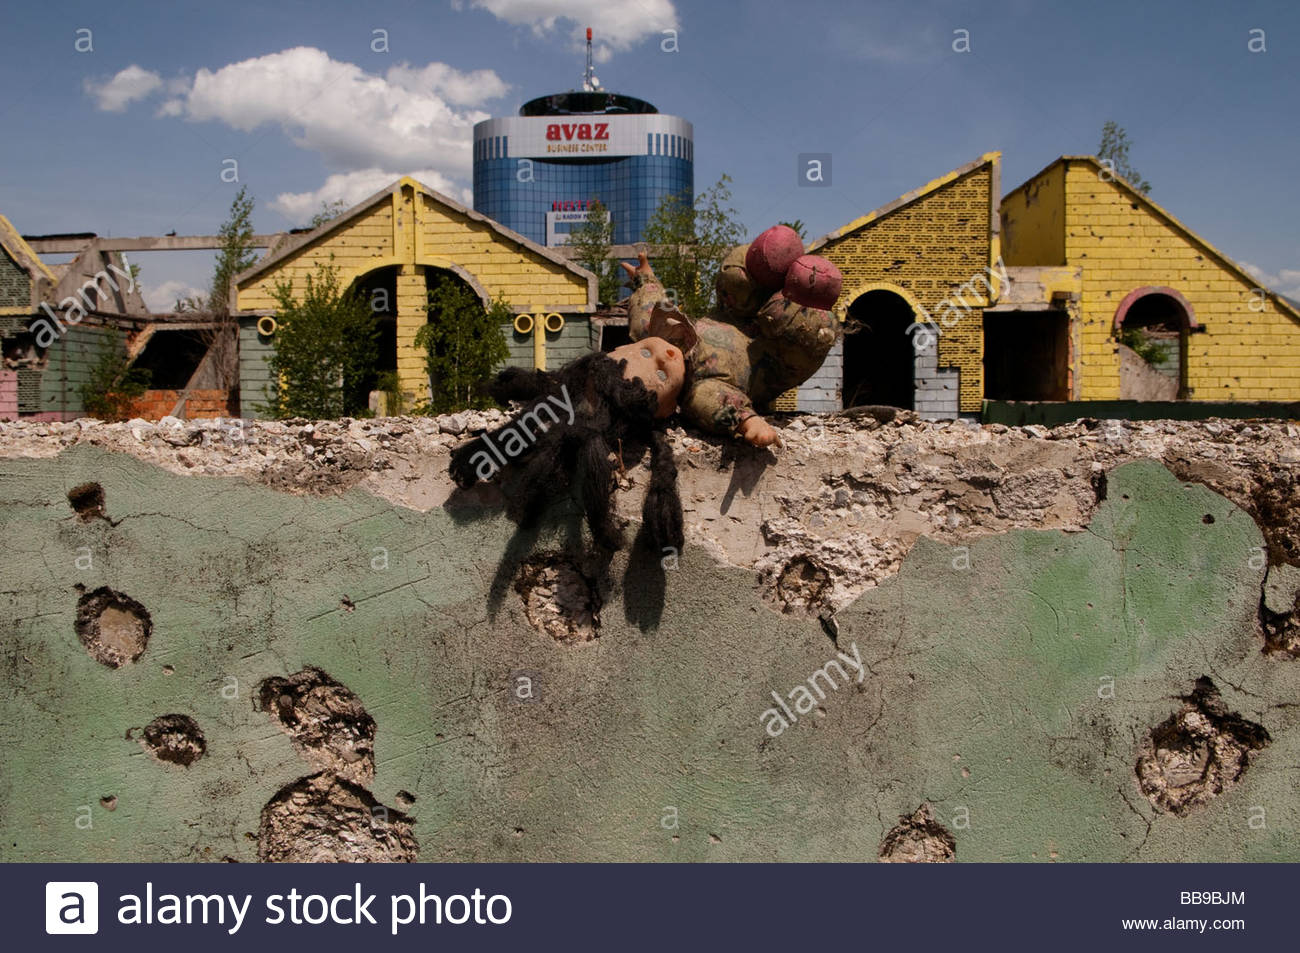 A doll over of wall which shows shrapnel damage from the 1992-95 war in downtown Sarajevo, Bosnia Herzegovina - Stock Image